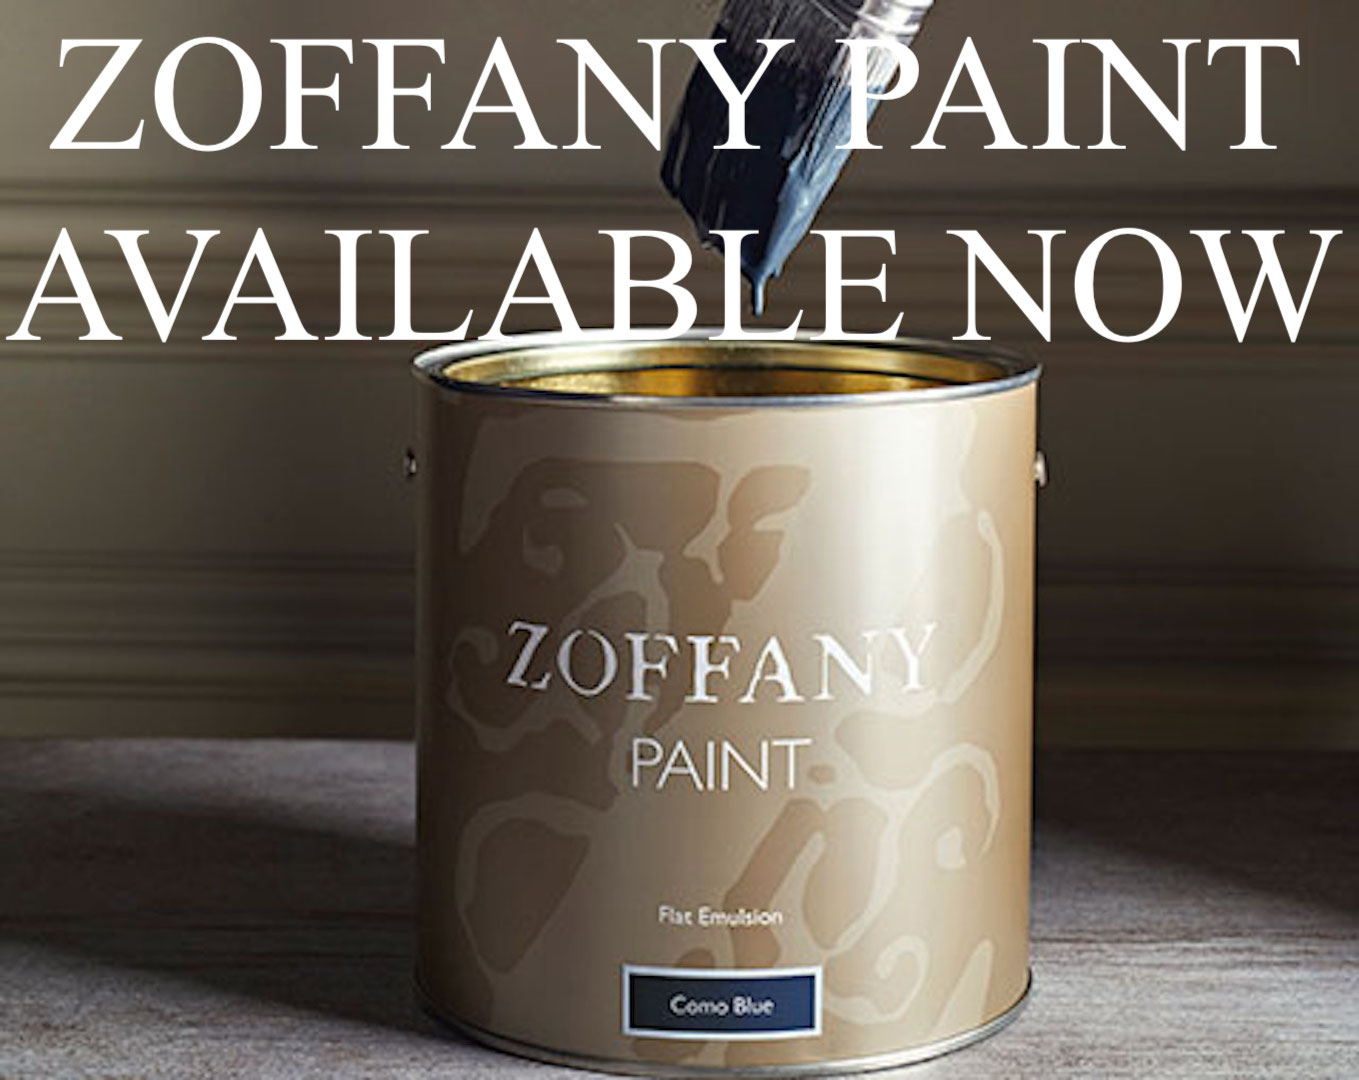 zoffany paints